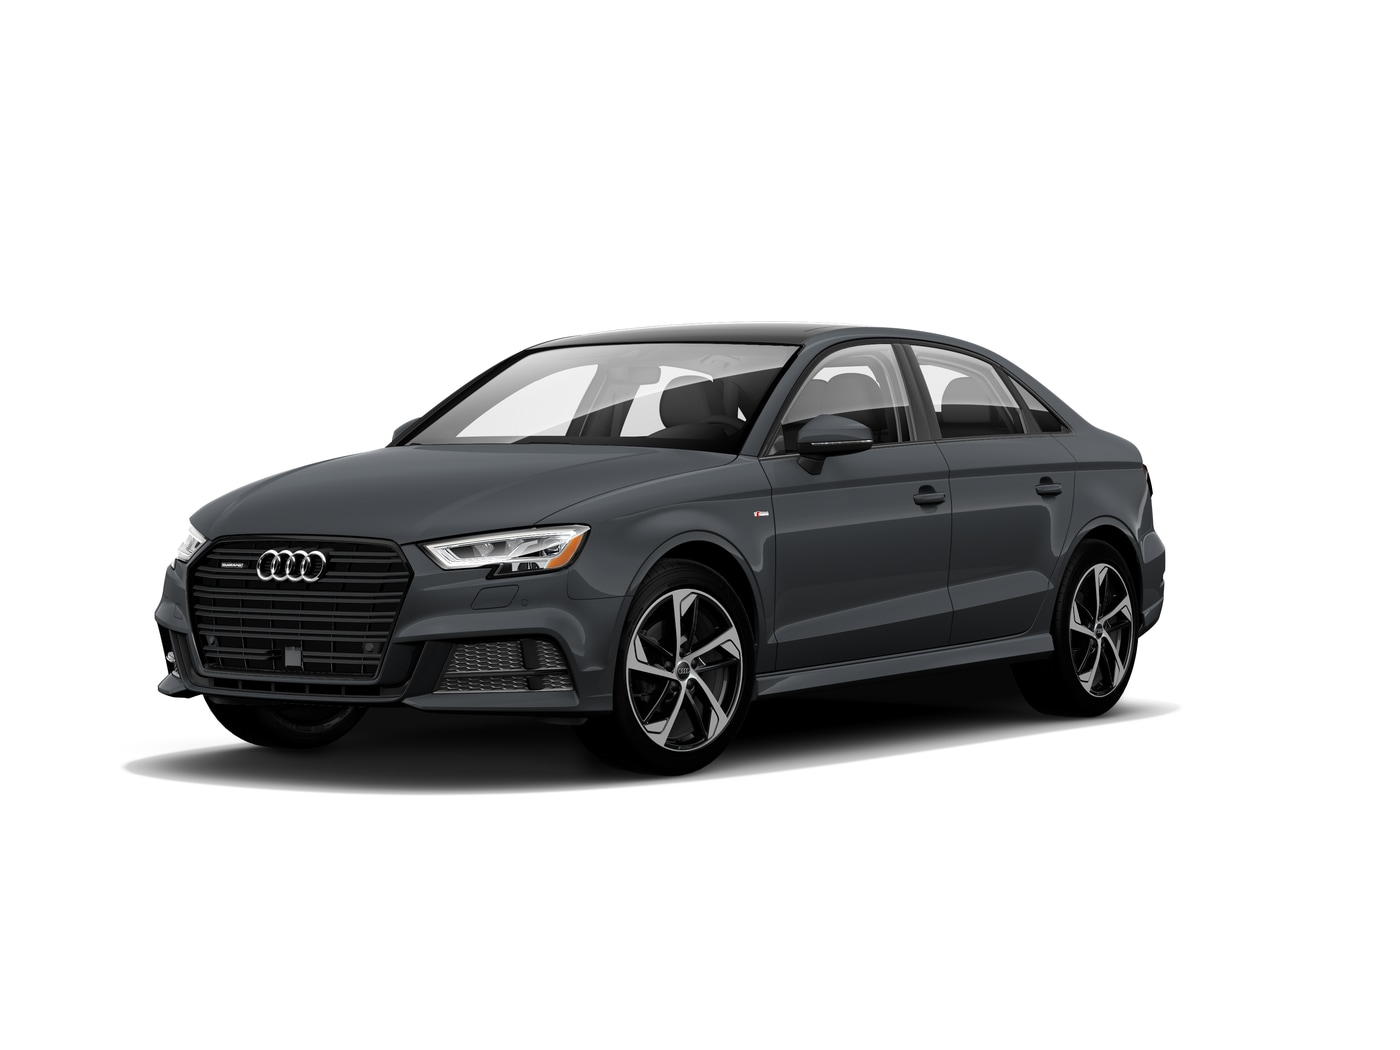 new audi vehicles for sale in new york new jersey connecticut new audi vehicles for sale in new york